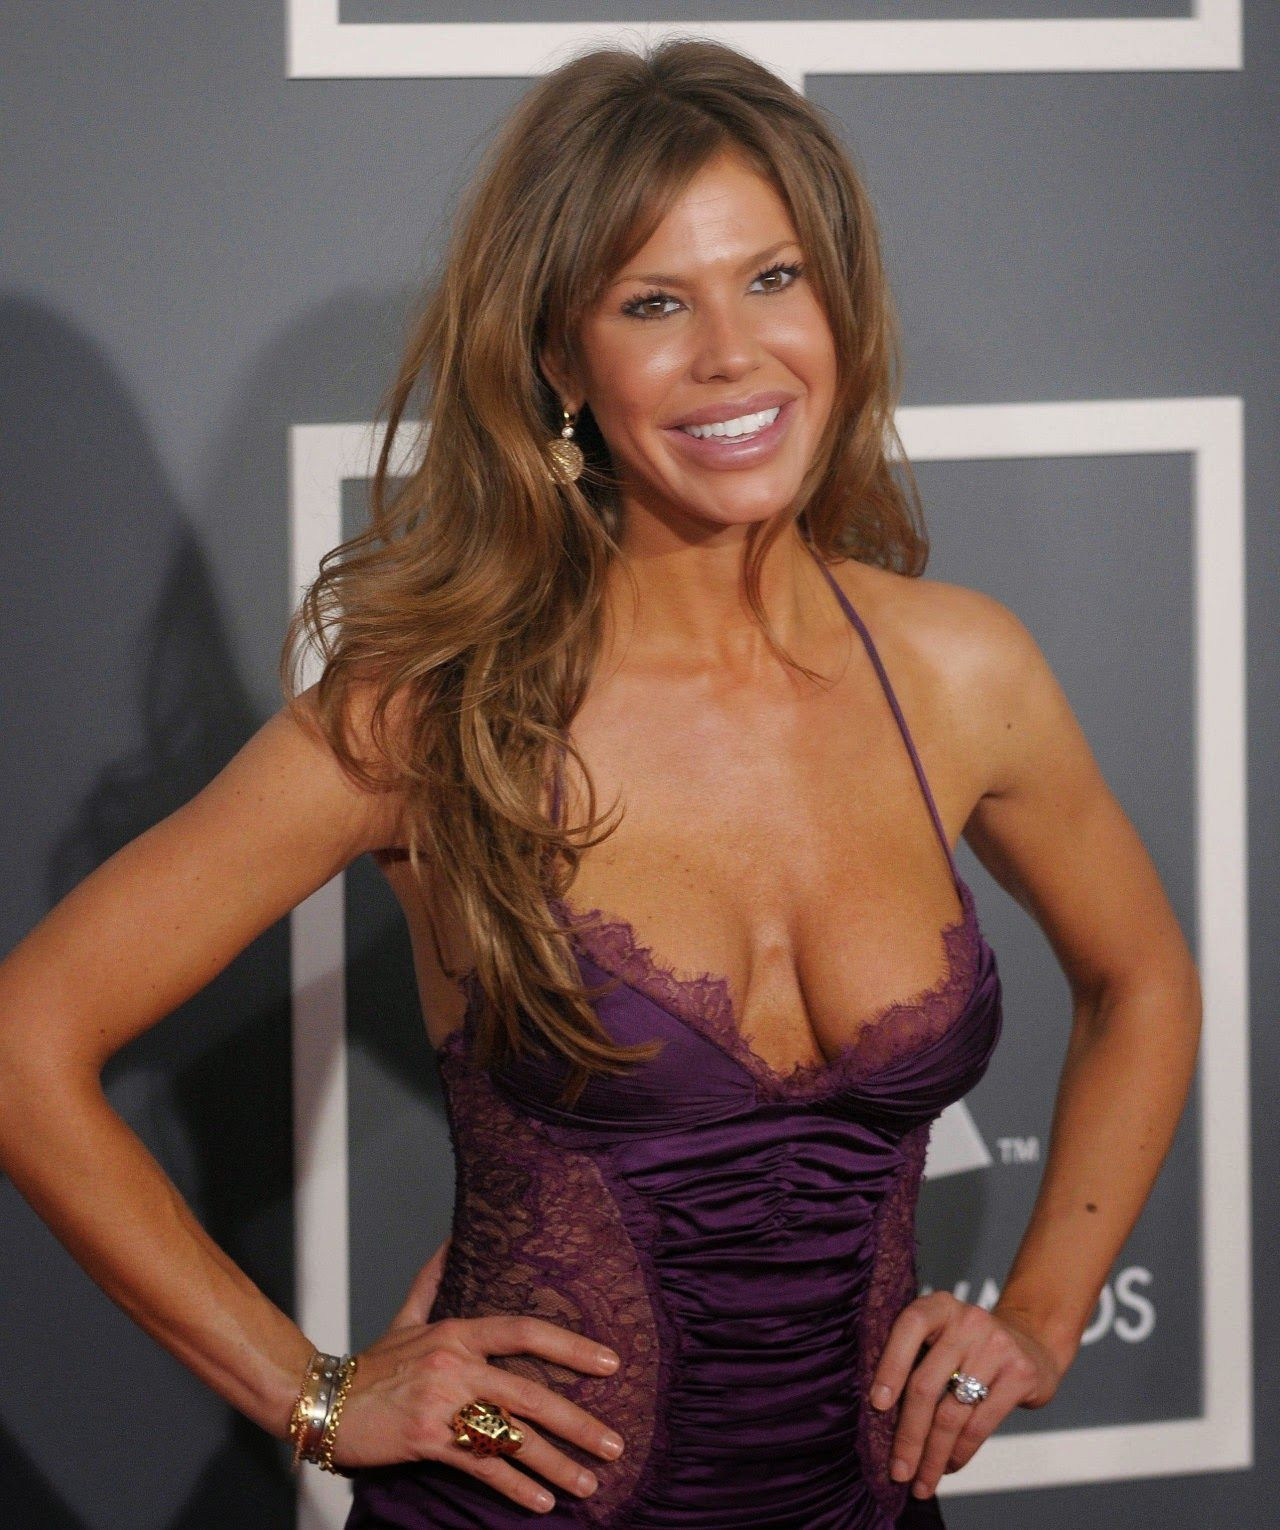 Nude Nikki Cox naked (45 foto and video), Topless, Hot, Instagram, cleavage 2015